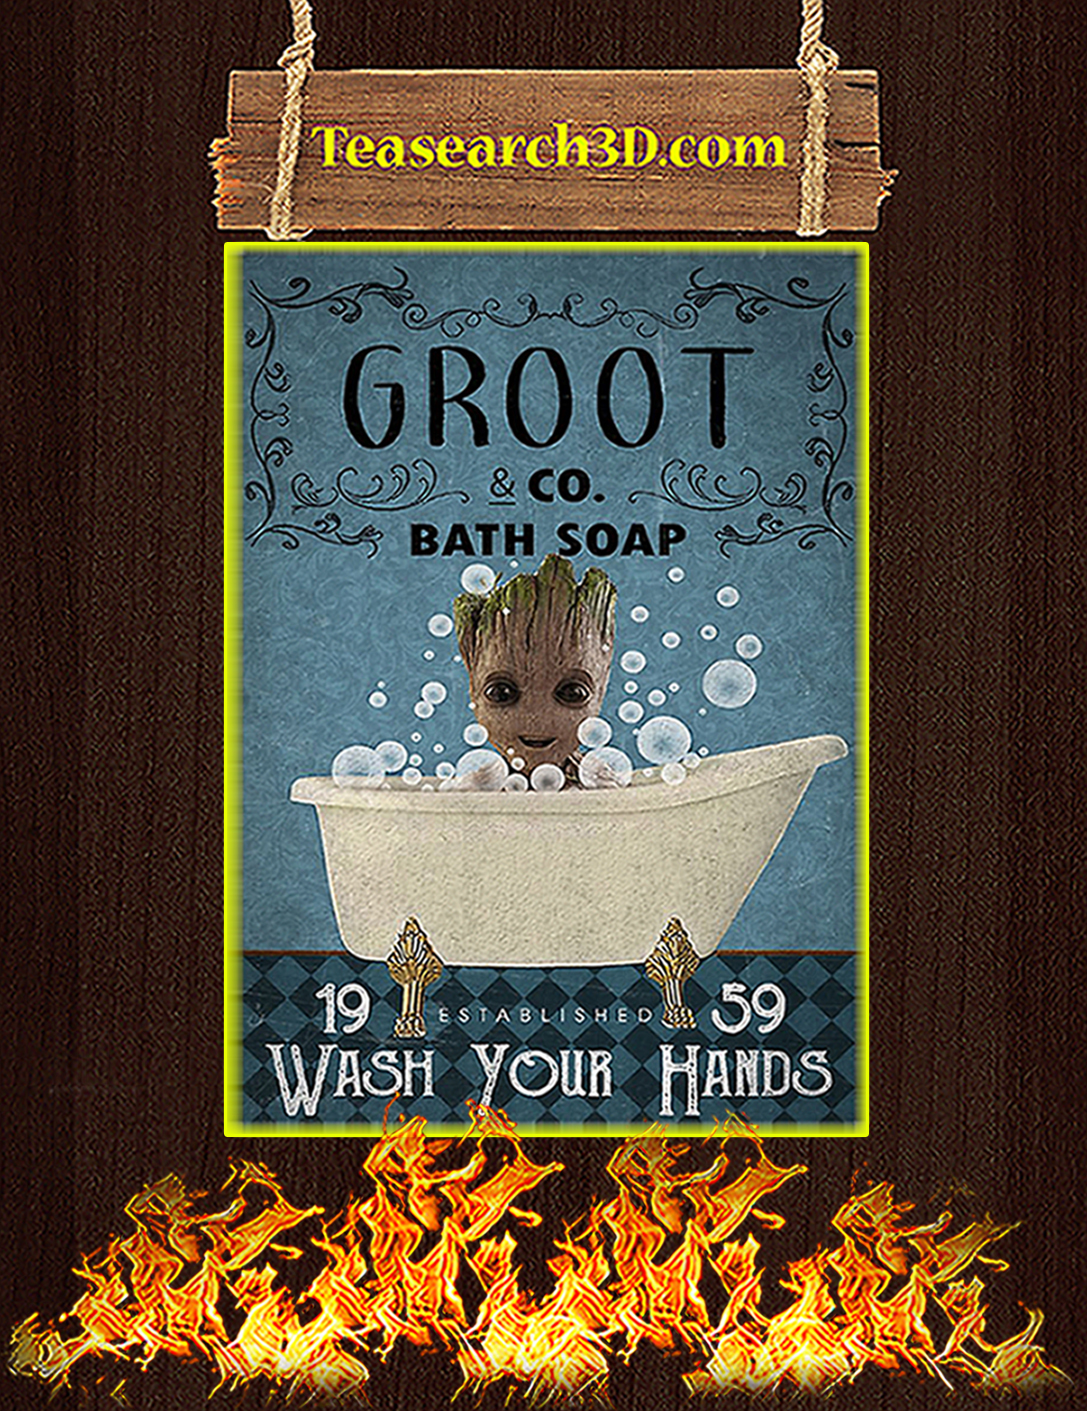 Bath Soap Company Groot Wash Your Hands Poster A2